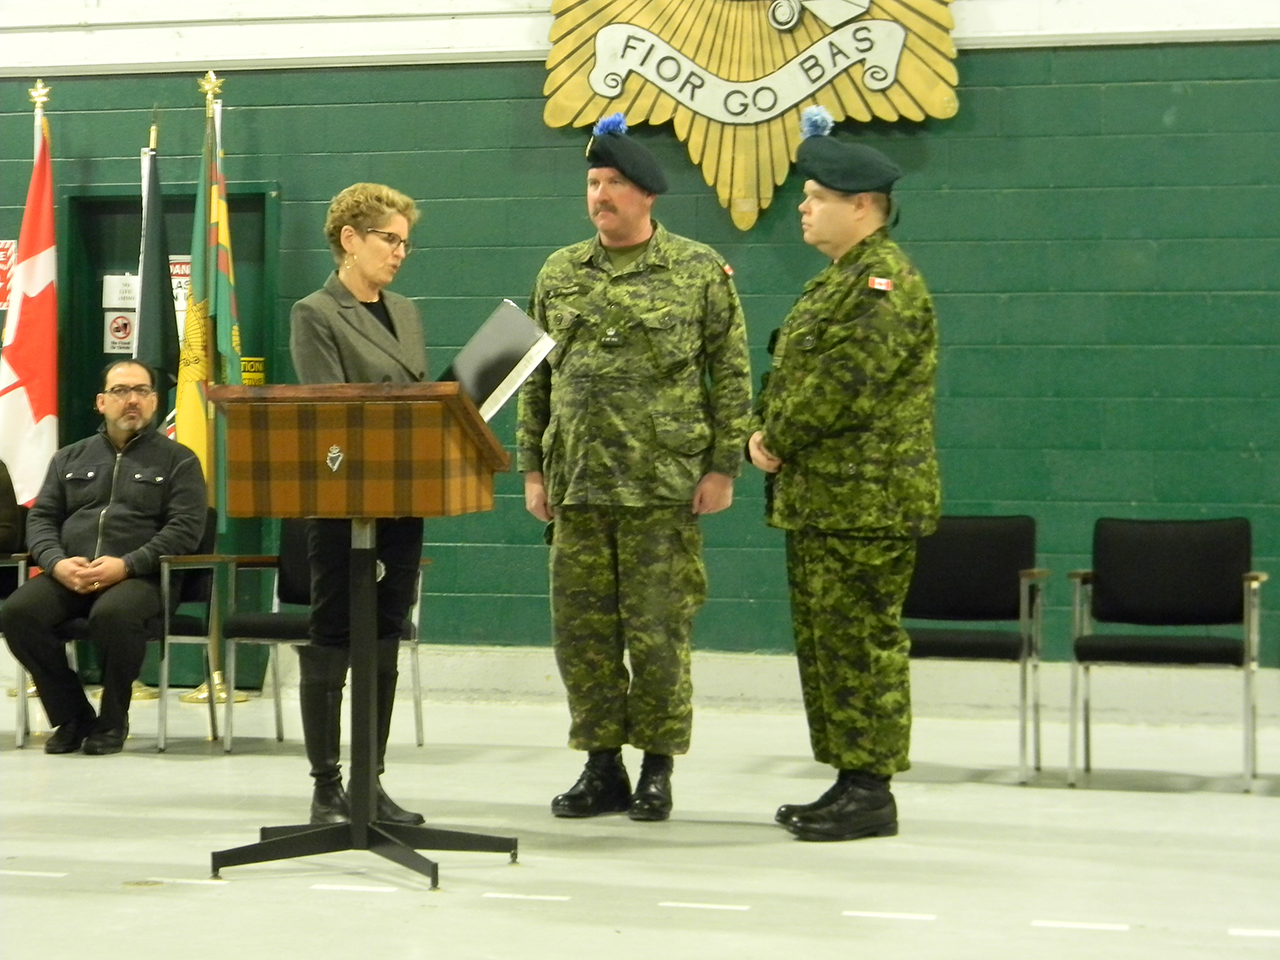 Premier of Ontario Kathleen Wynne presents a scroll commemorating 100 years of the Irish Regiment of Canada to Major Ken McClure and Honourary Lieutenant-Colonel Kevin McCormick.